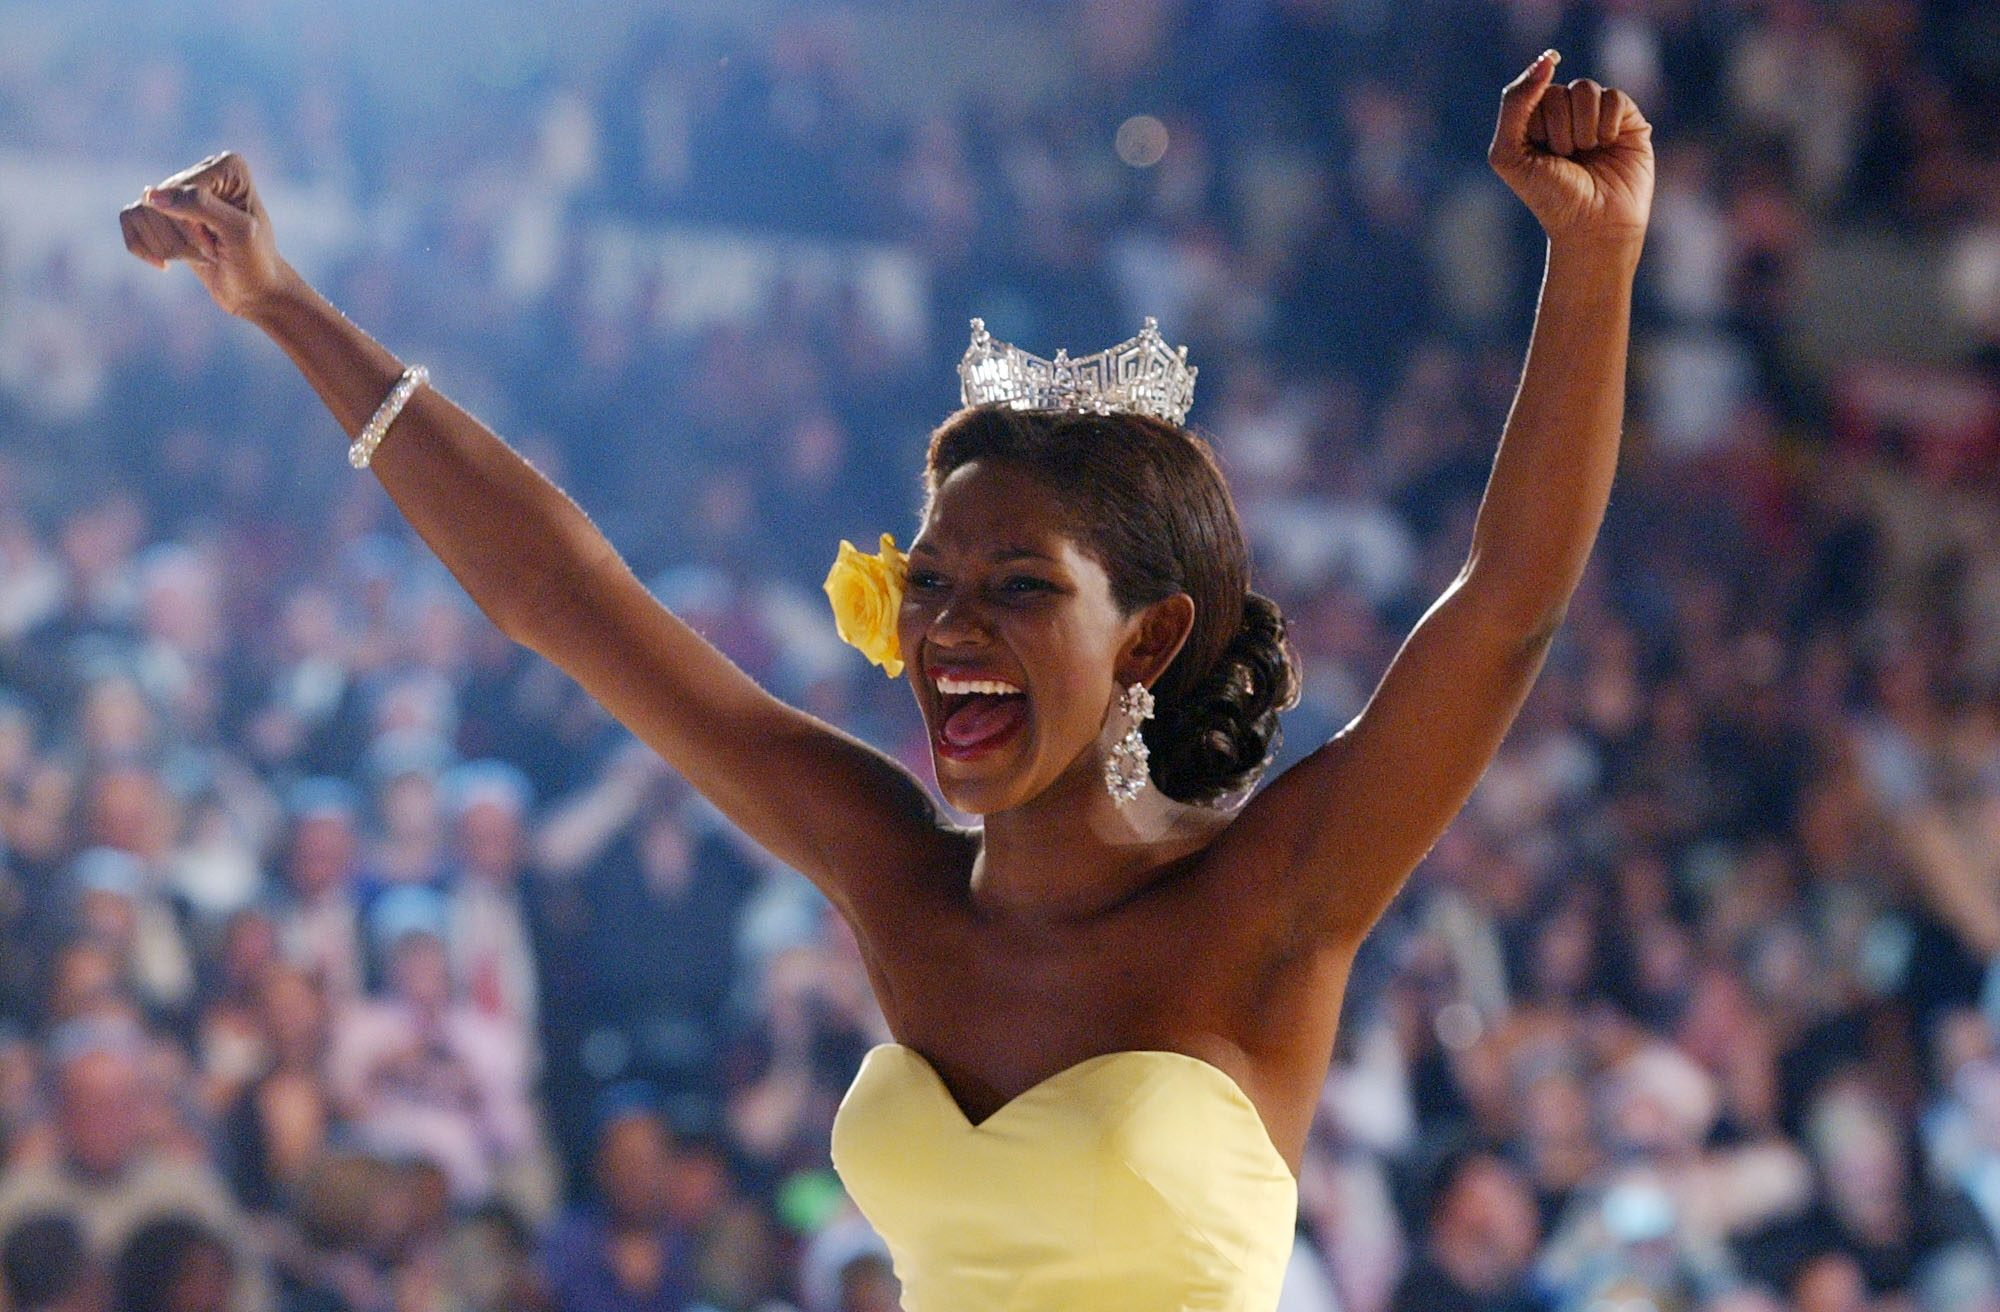 Mandatory Credit: Photo by Brian Branch-Price/AP/Shutterstock (6426397c) MISS AMERICA Miss America 2004 Ericka Dunlap reacts after she won the Miss America competition in Atlantic City, N.J MISS AMERICA, ATLANTIC CITY, USA